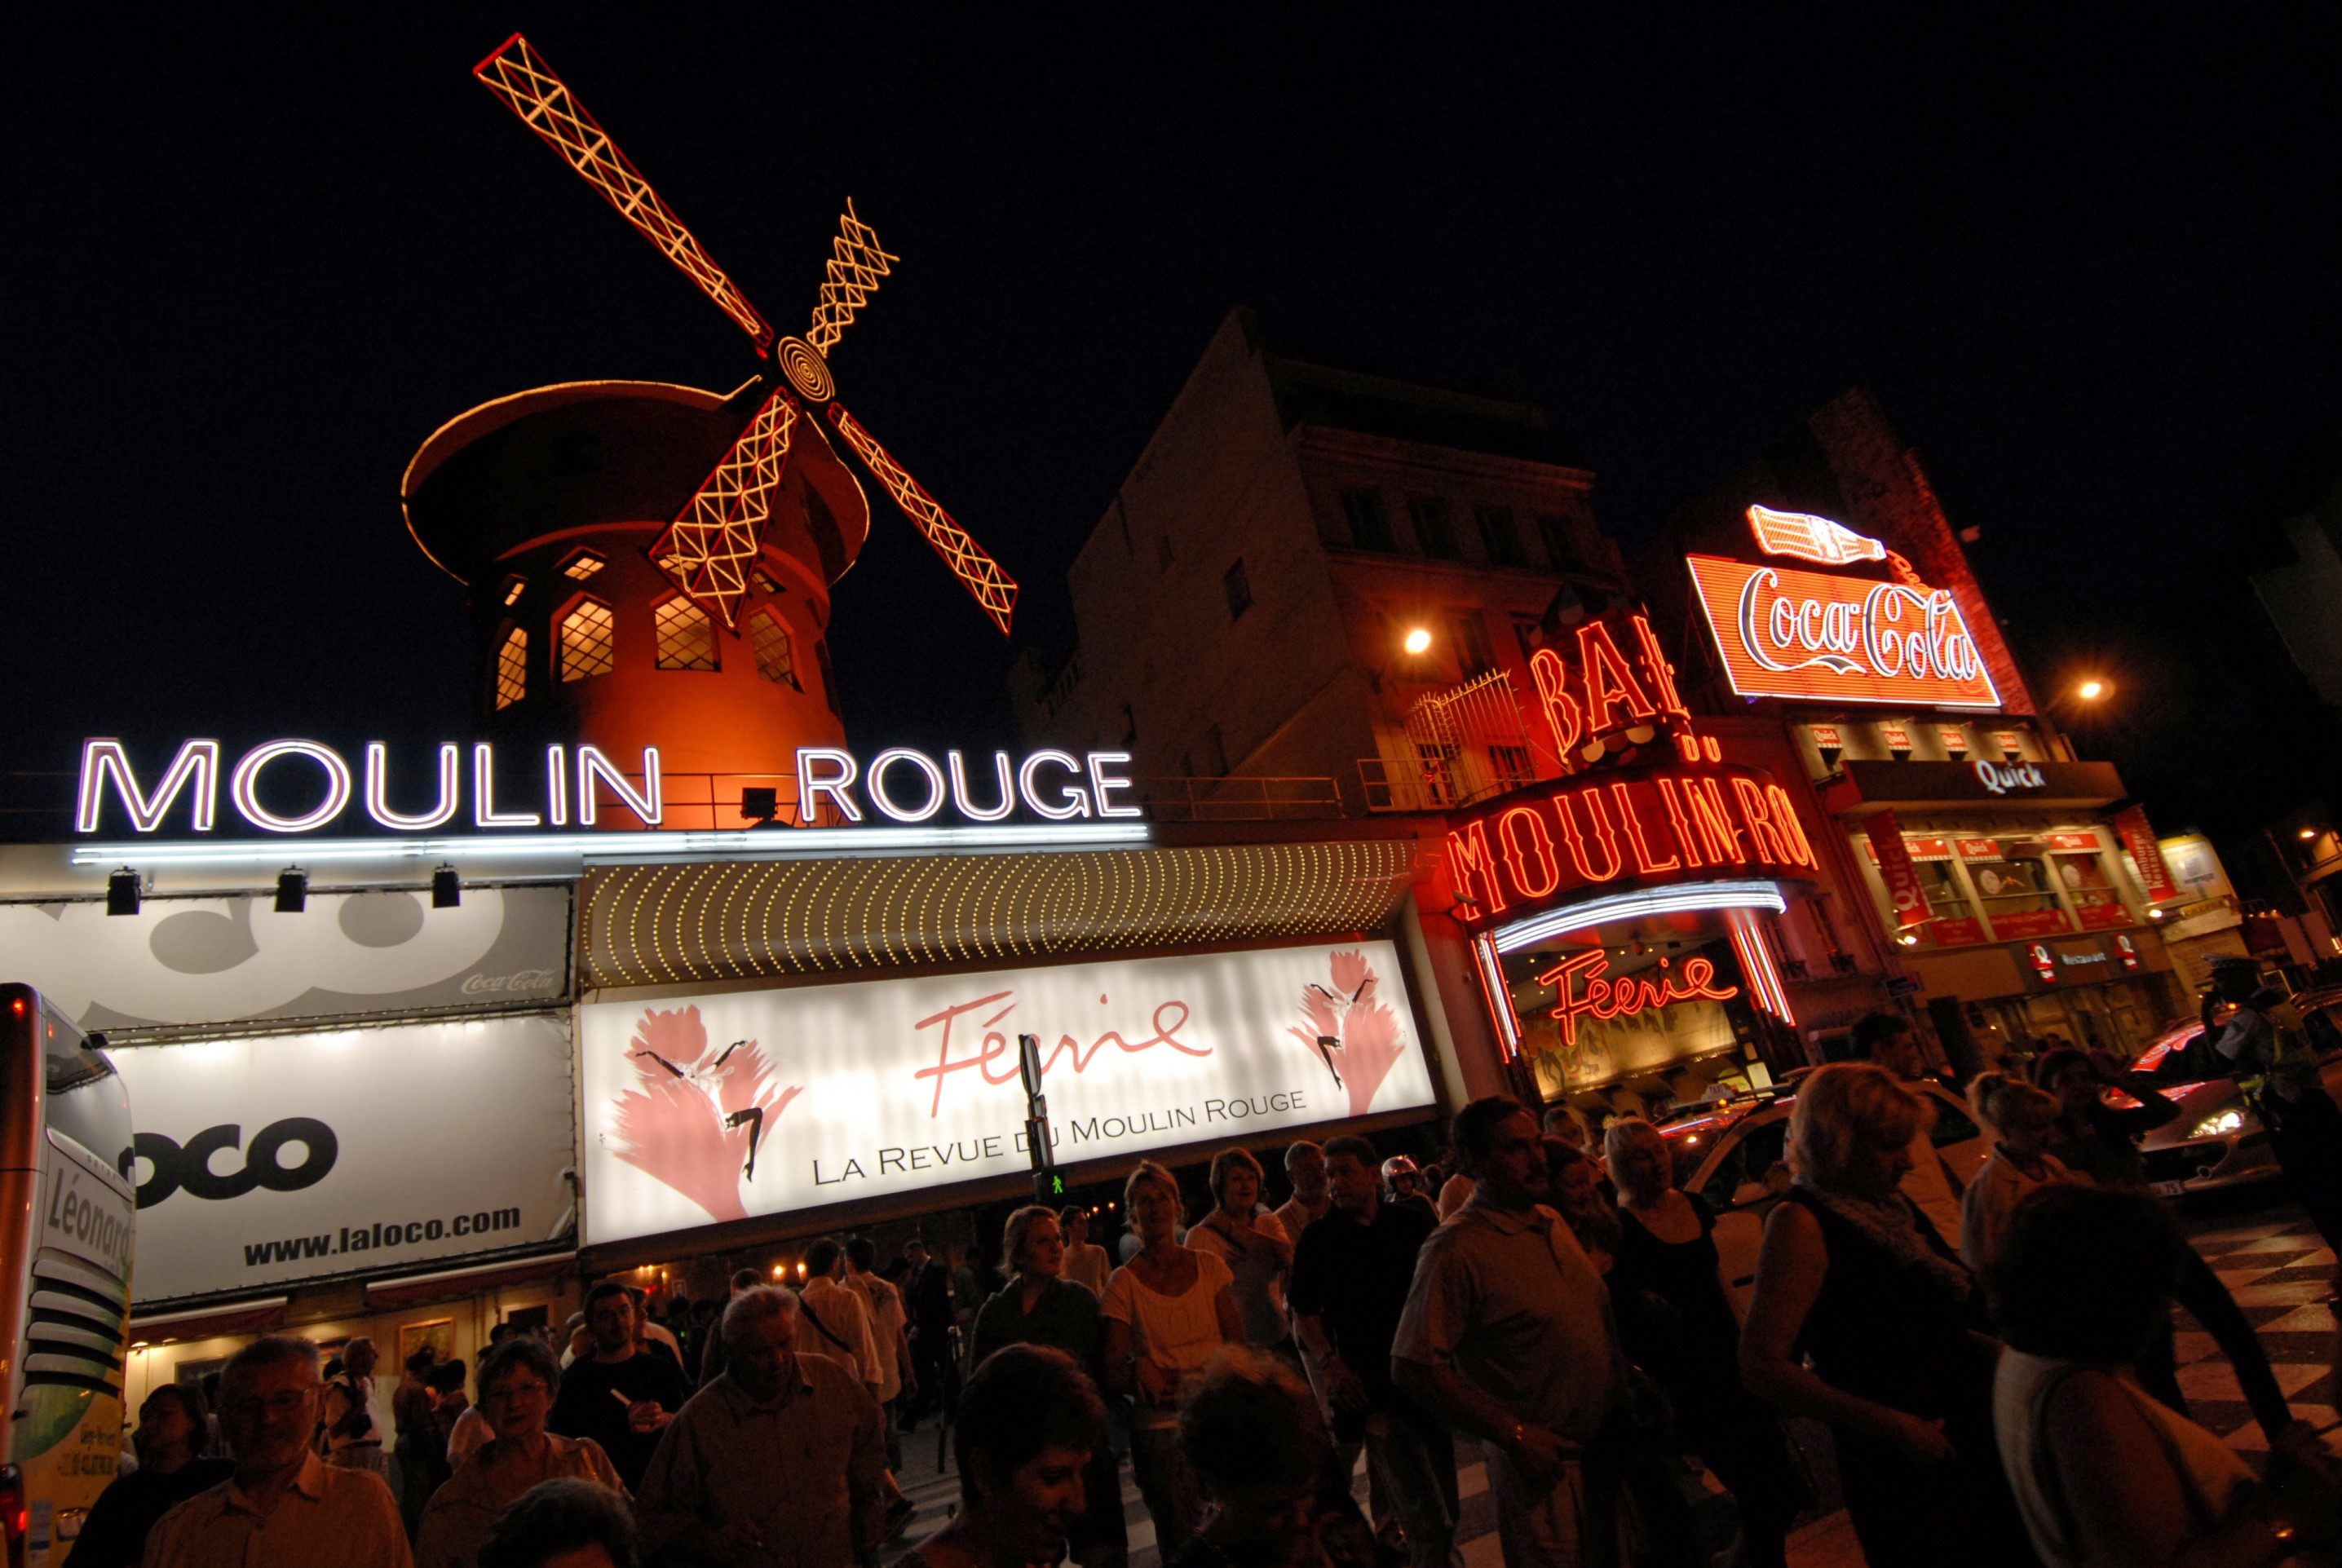 Slide 24 of 31: Moulin Rouge is another worst Paris tourist attraction to say non to. The nightclub's heyday has long since passed, and it's not worth shelling out the big bucks (er, euros) for a canned cancan experience alongside the tourist hordes here.